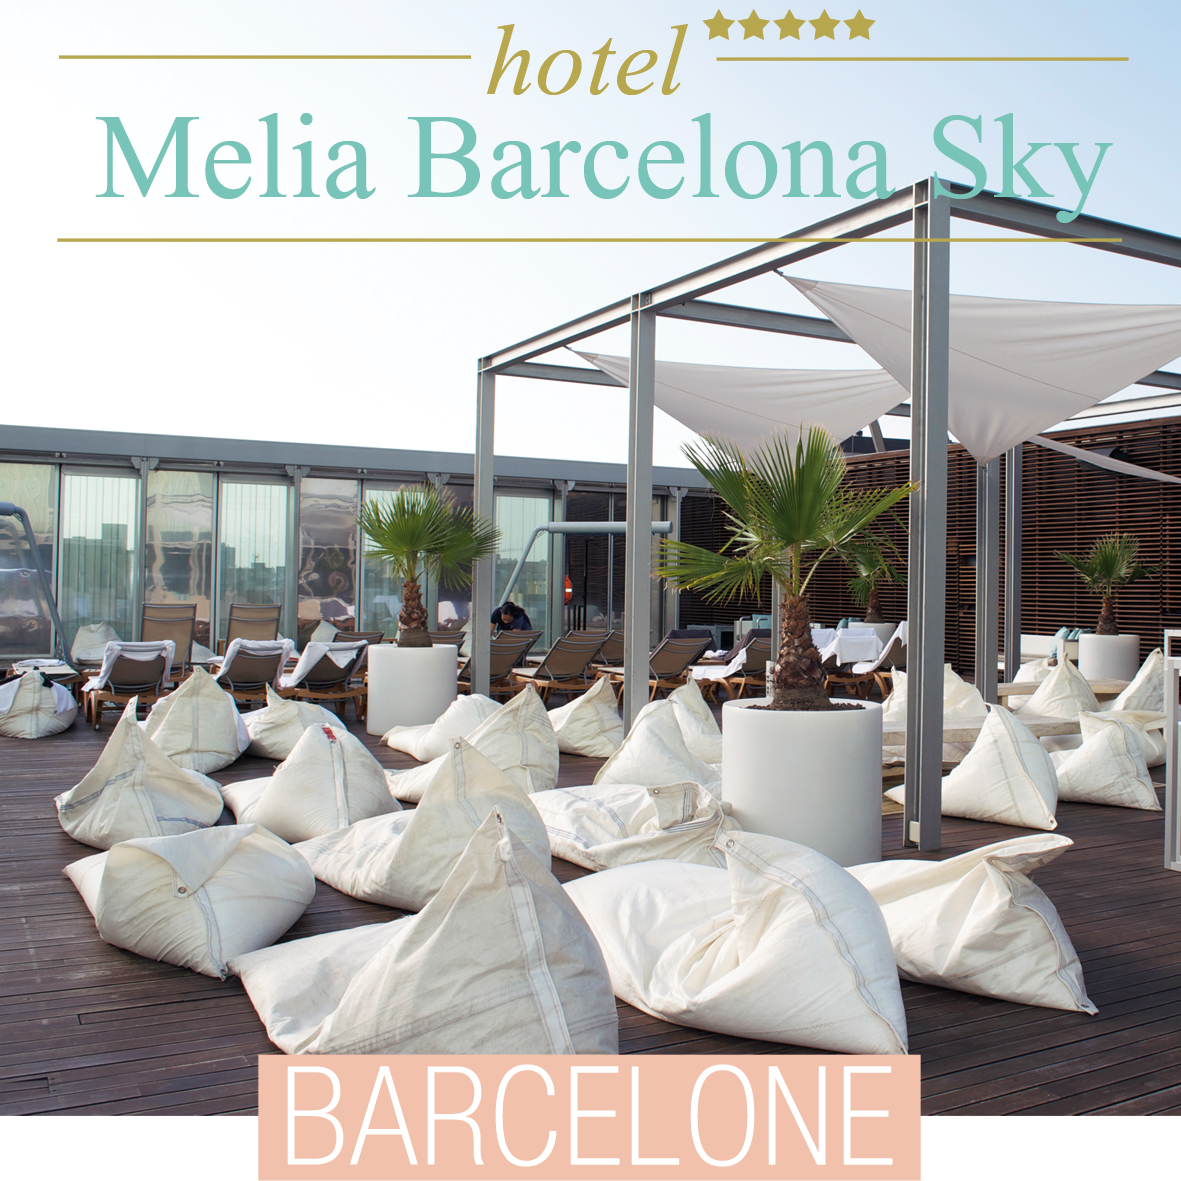 barcelone h tel the level at melia barcelona sky espagne une pintade montpellier. Black Bedroom Furniture Sets. Home Design Ideas